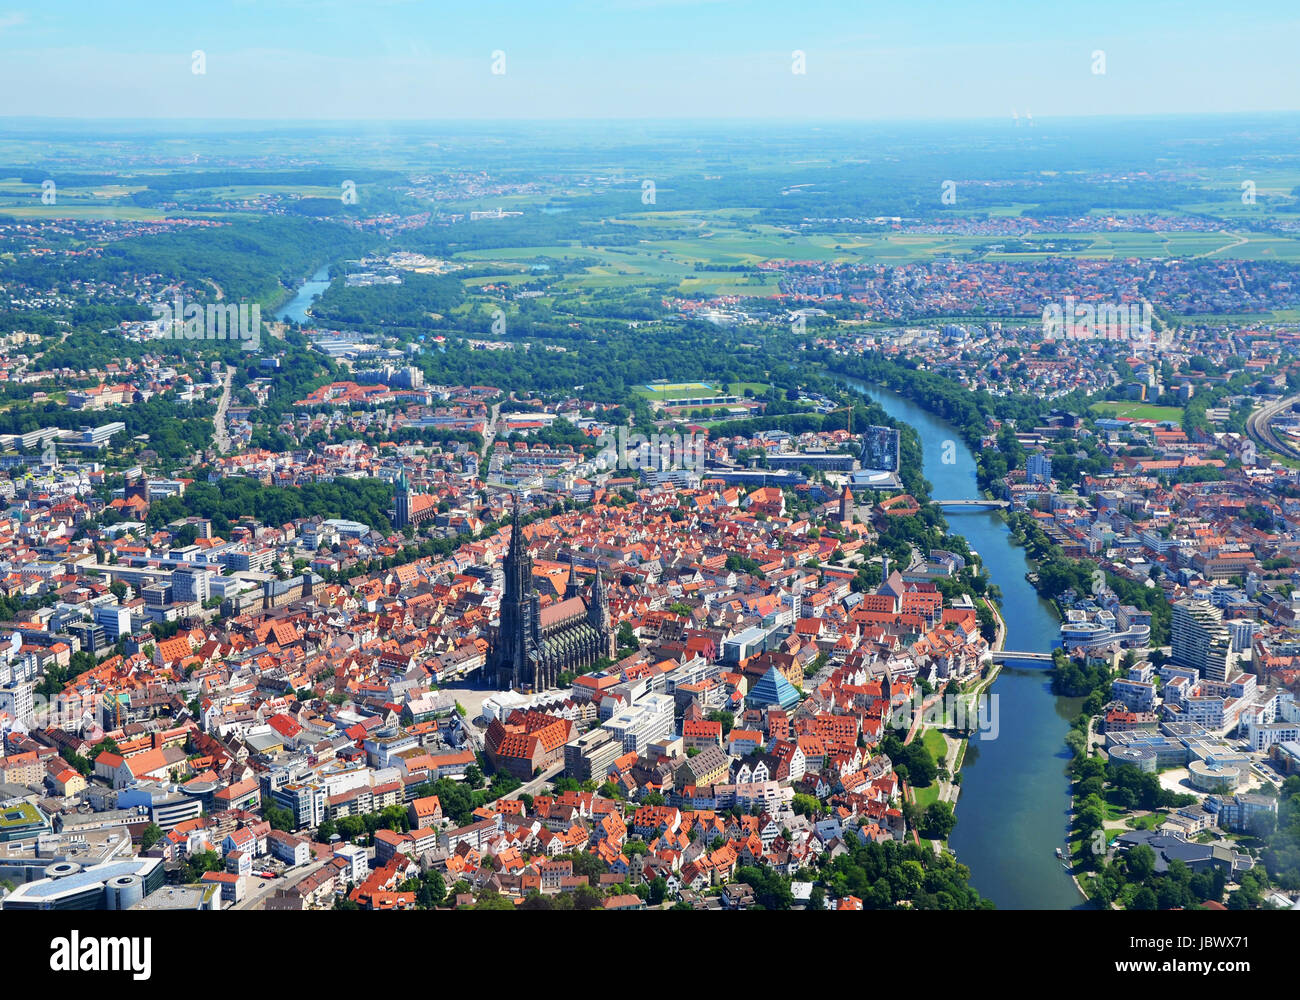 Ulm Deutschland Germany Donau Ulm Stock Photos Germany Donau Ulm Stock Images